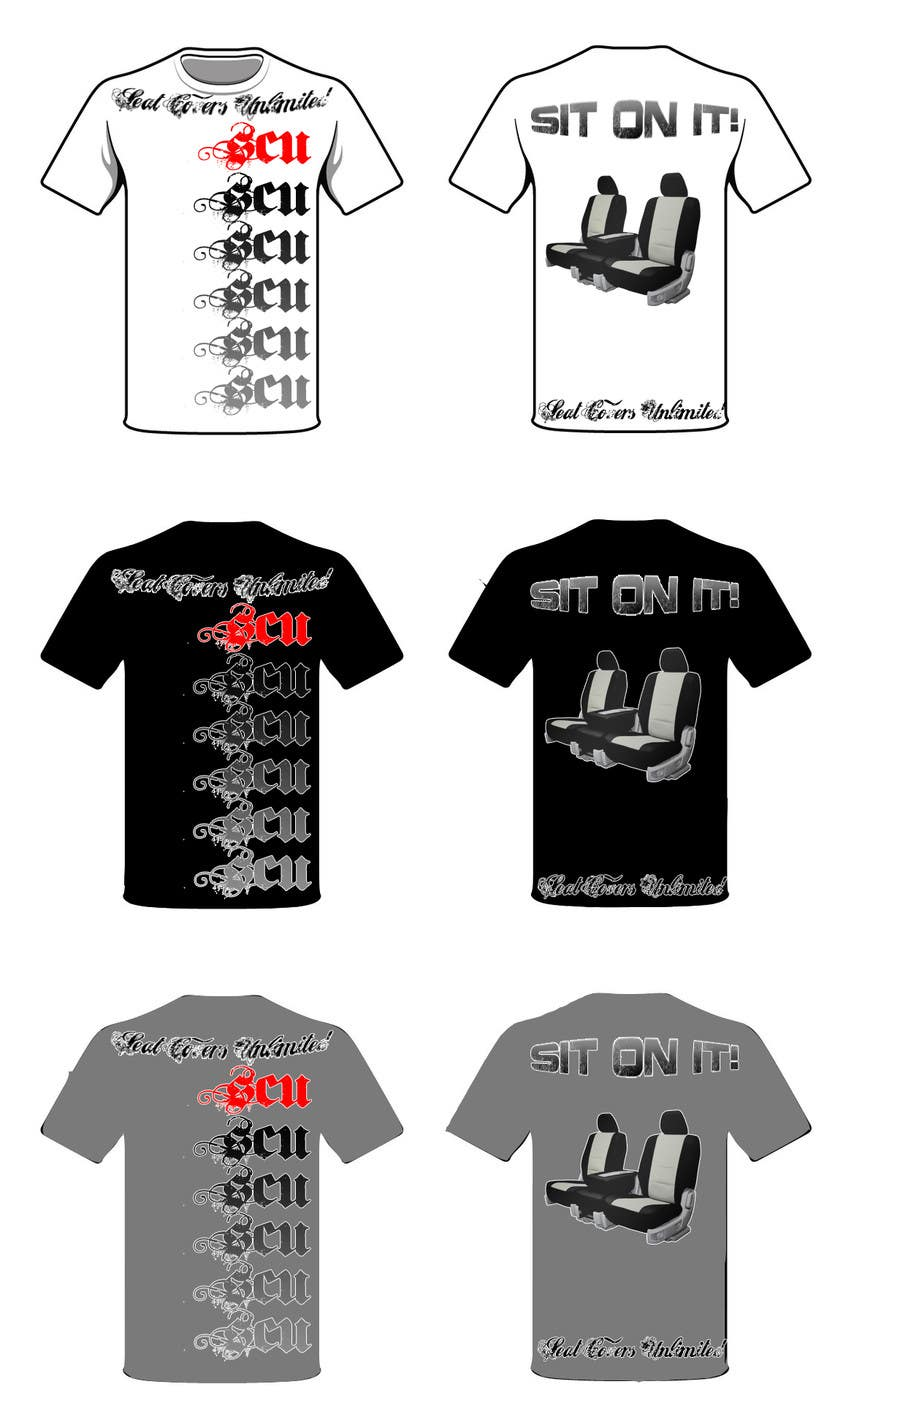 #3 for Logo Design for Seat Covers Unlimited T-Shirts by gomezba472